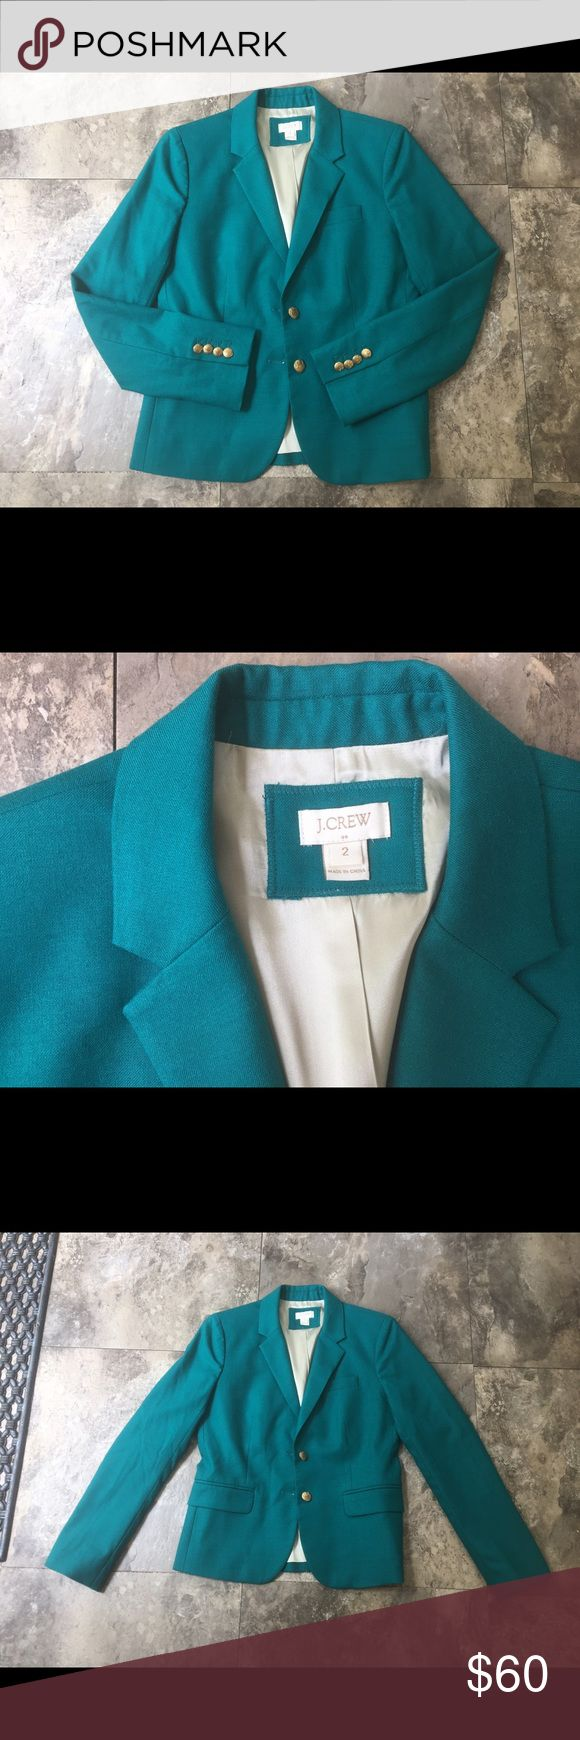 J. Crew blazer size 2 Beautiful teal/turquoise blazer by jcrew women's size 2. In GREAT shape,  almost new condition! Beautiful color for the summer and nice weather approaching. No buttons missing! No flaws. Absolutely gorgeous and can make just about any outfit pop! 😊 J. Crew Jackets & Coats Blazers